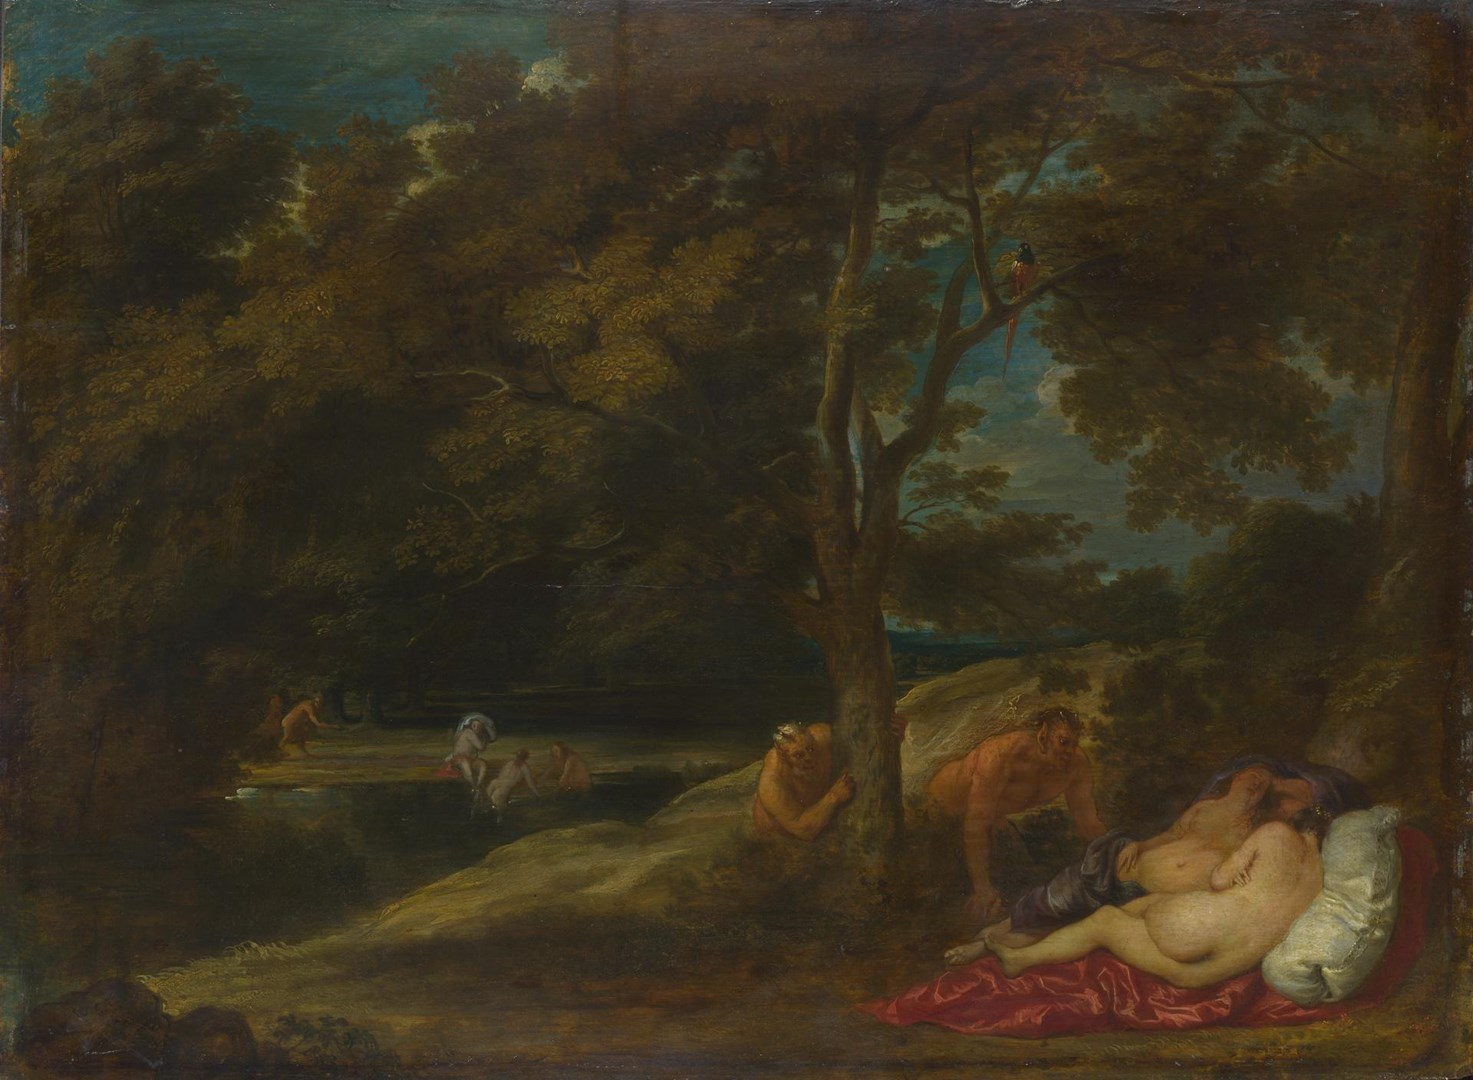 Nymphs surprised by Satyrs by Franchoys Wouters